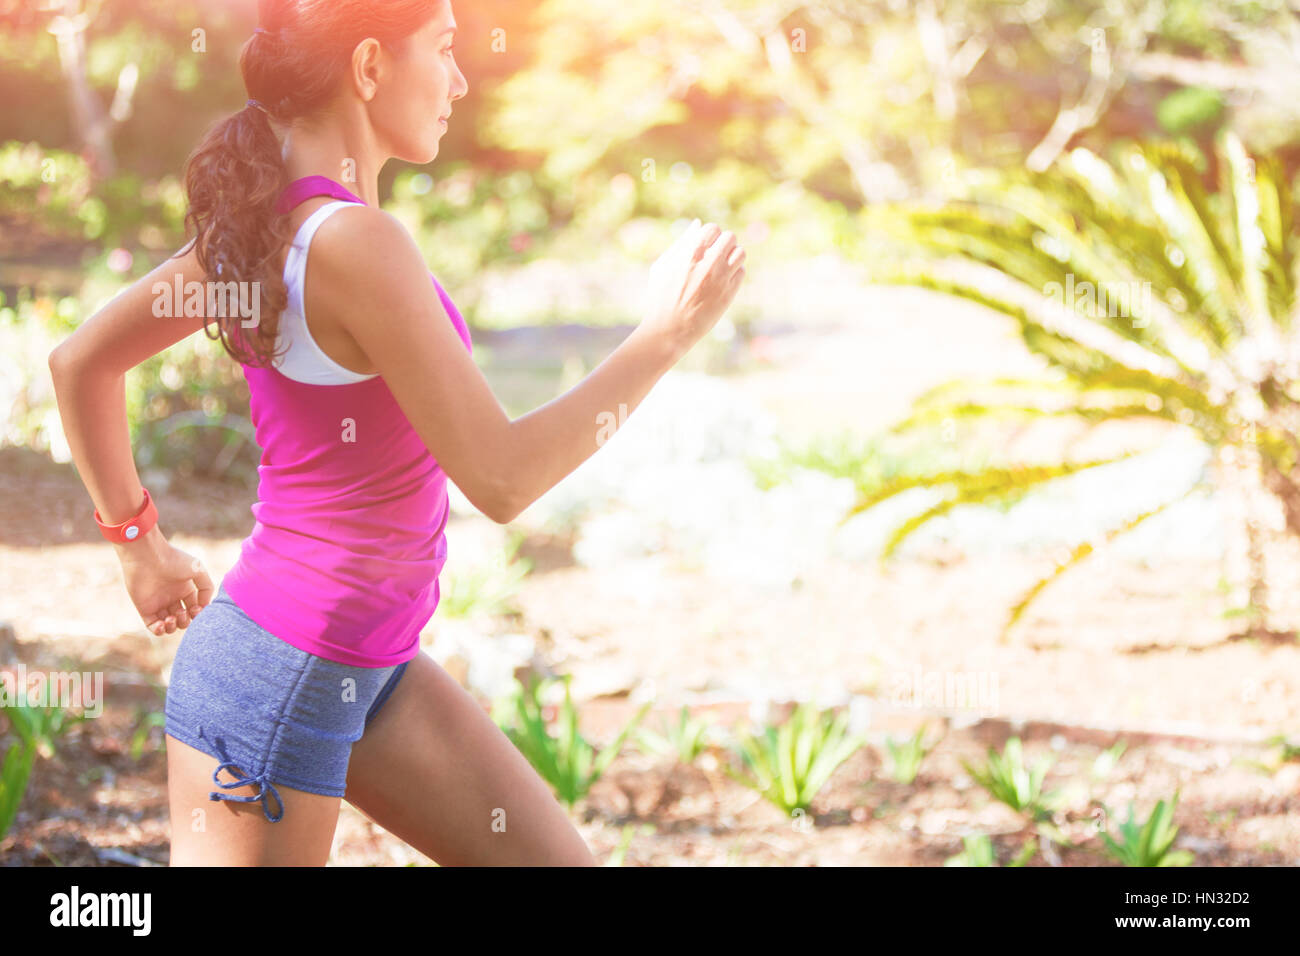 Woman exercising in park on sunny day - Stock Image